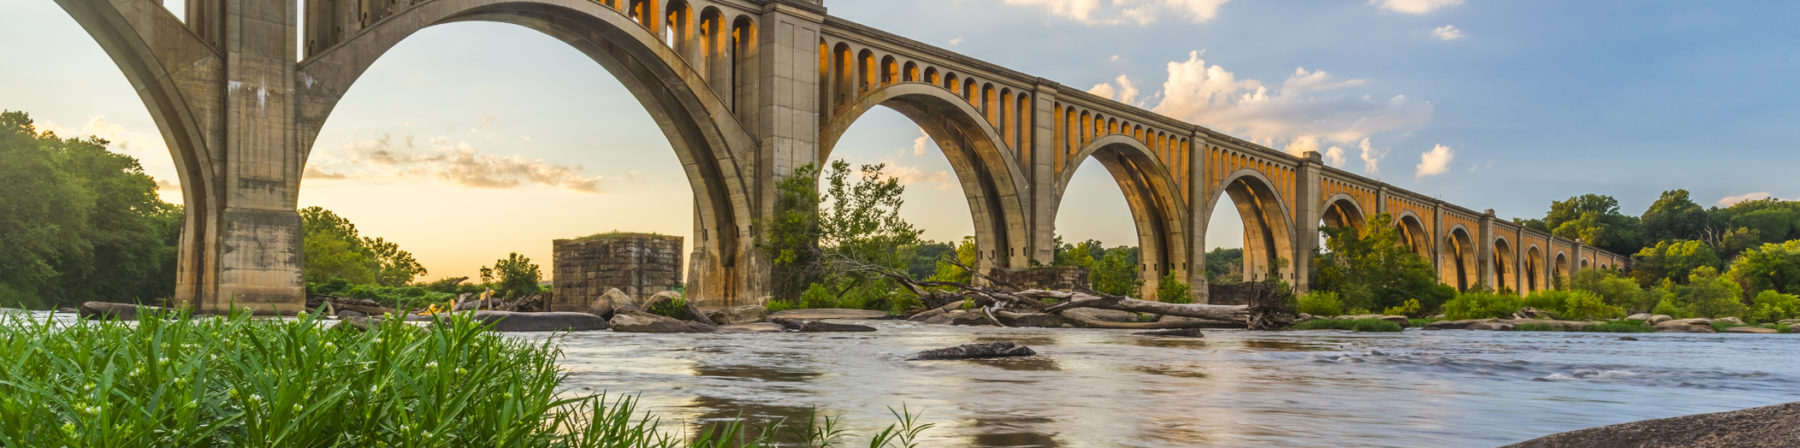 This concrete arch railroad bridge spanning the James River was built by the Atlantic Coast Line, Fredericksburg and Potomac Railroad in 1919 to route transportation of freight around Richmond, VA.